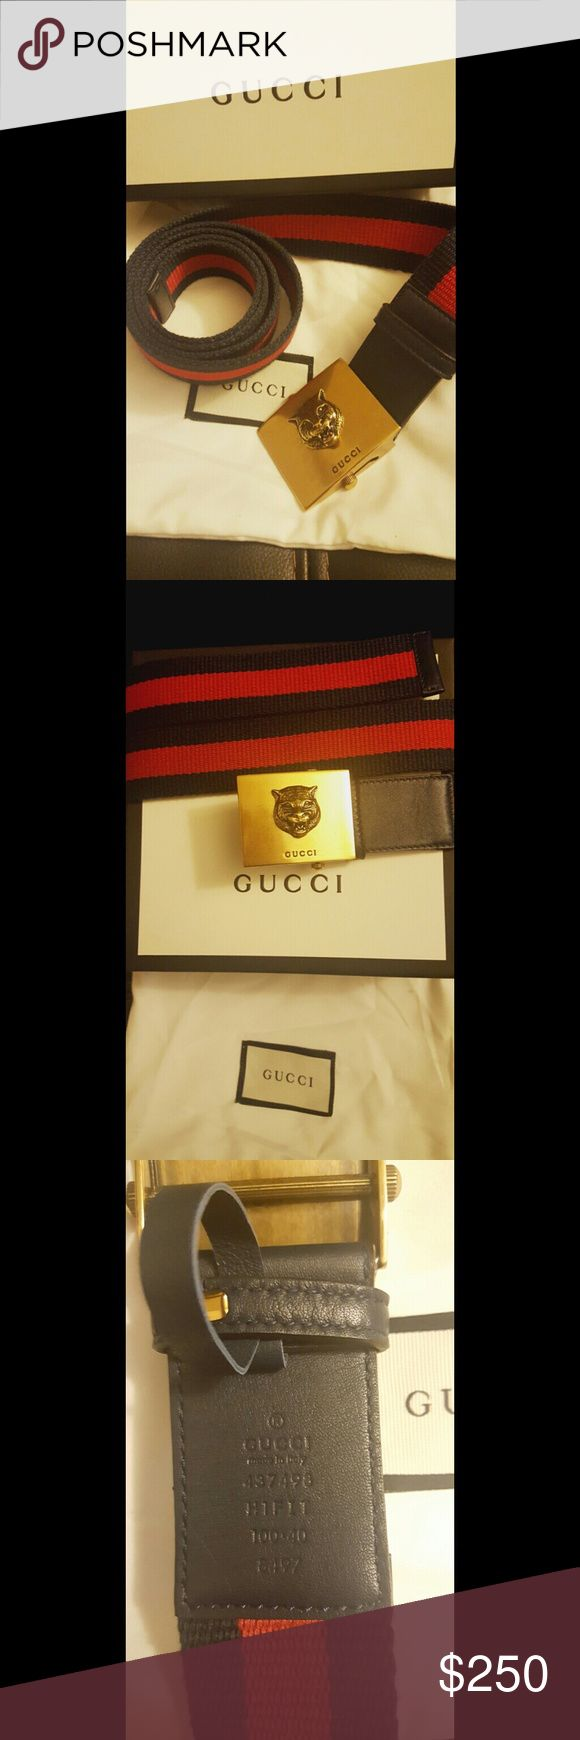 Brand new gucci belt Brand new gucci web leather belt with feline gold buckle blue red blue Gucci Accessories Belts